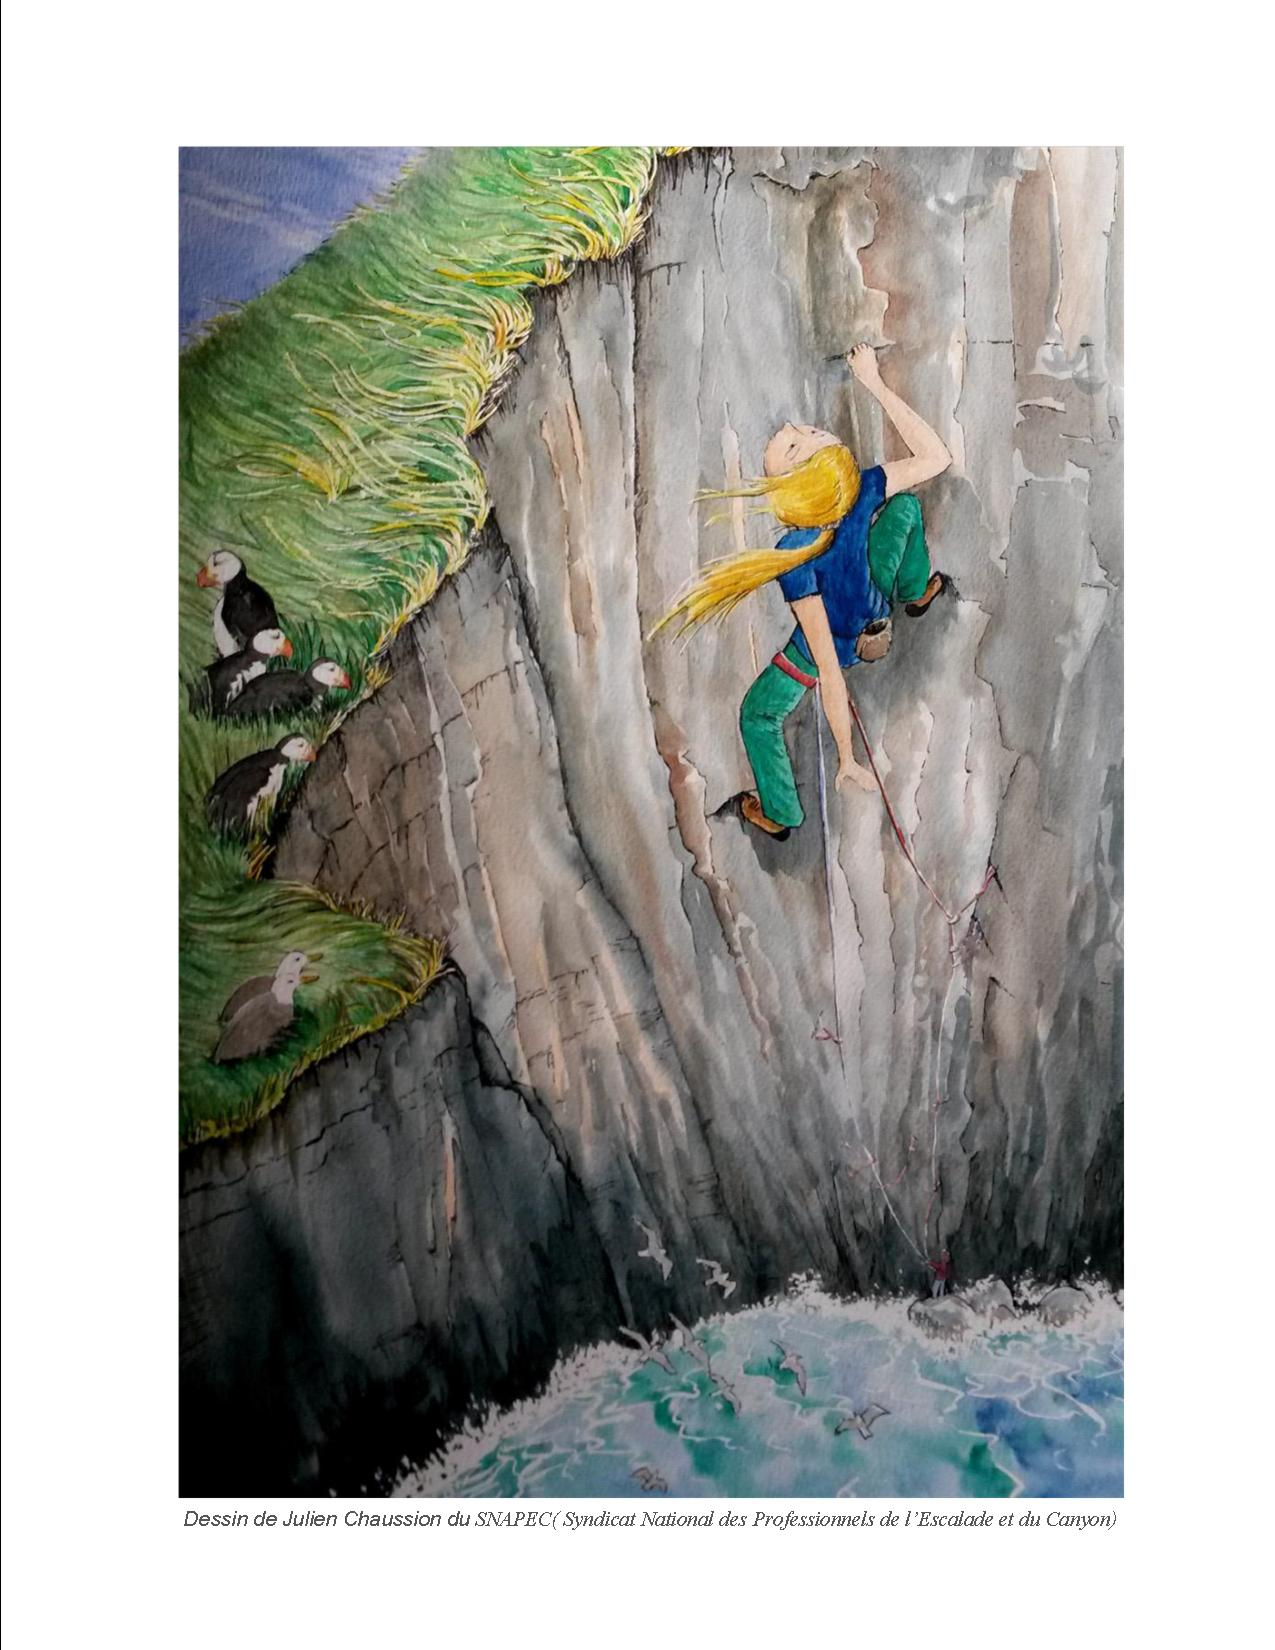 Dessin de Julien Chaussion  www.ekilibre64.com canyoning escalade rafting pays-basque virginie faure